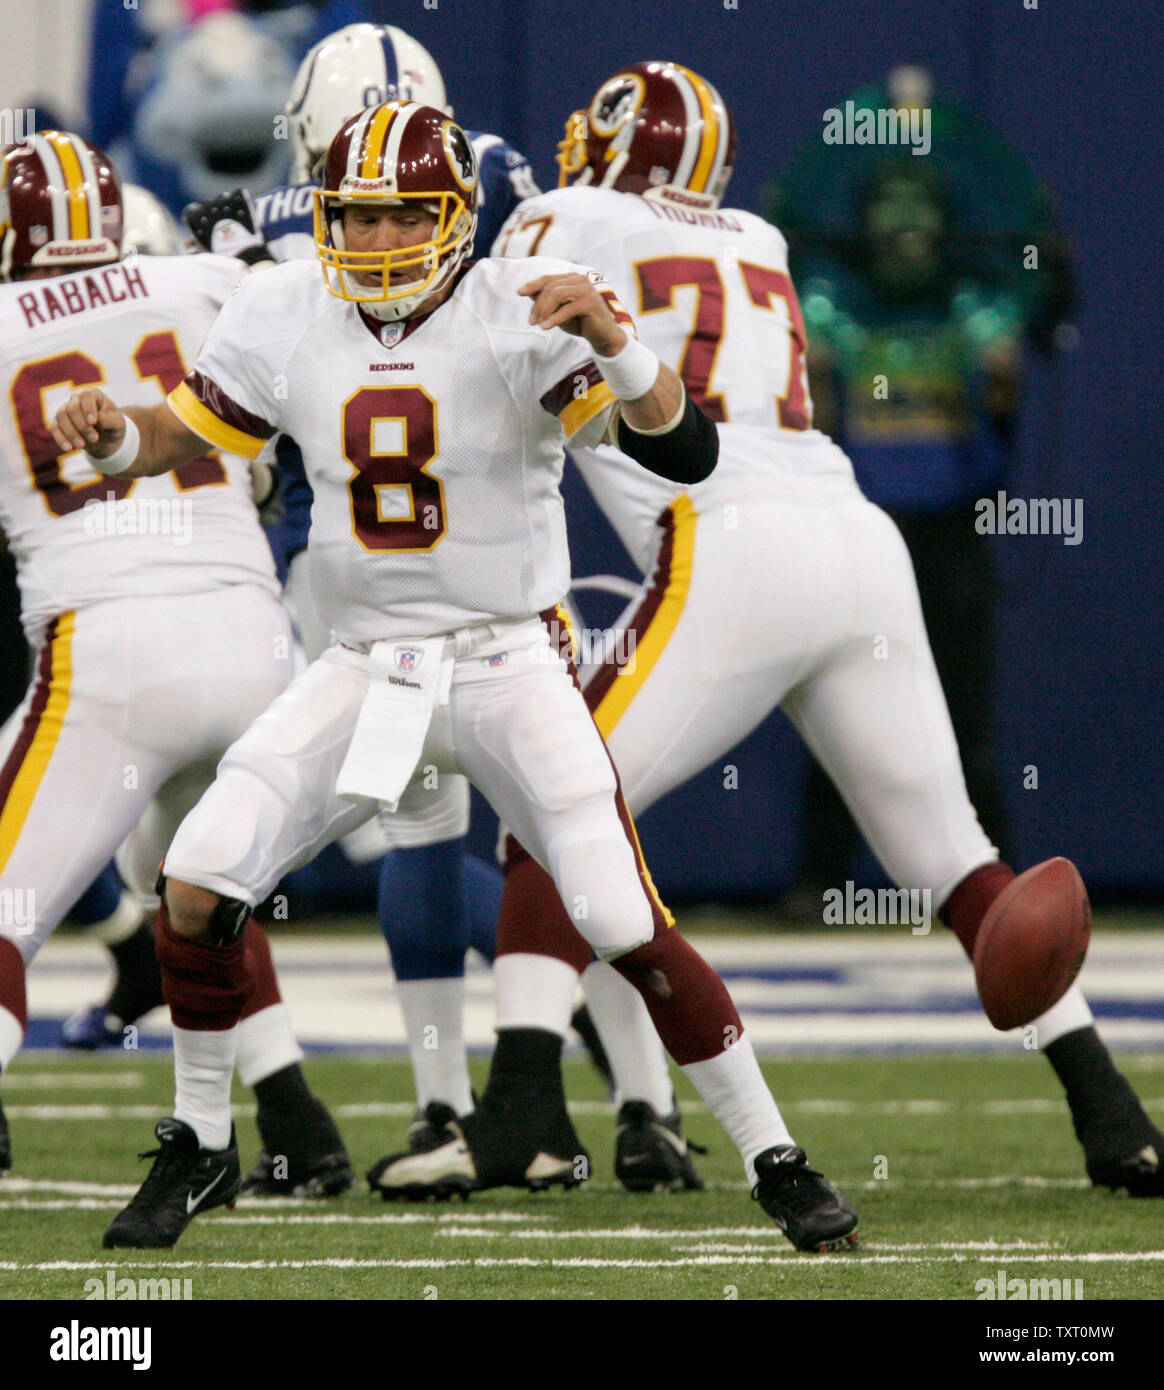 Washington Redskins quarterback Mark Brunell (8) fumbles the ball on the Indianapolis Colts 15-yard line at the RCA Dome in Indianapolis on October 22, 2006. (UPI Photo/Mark Cowan) - Stock Image